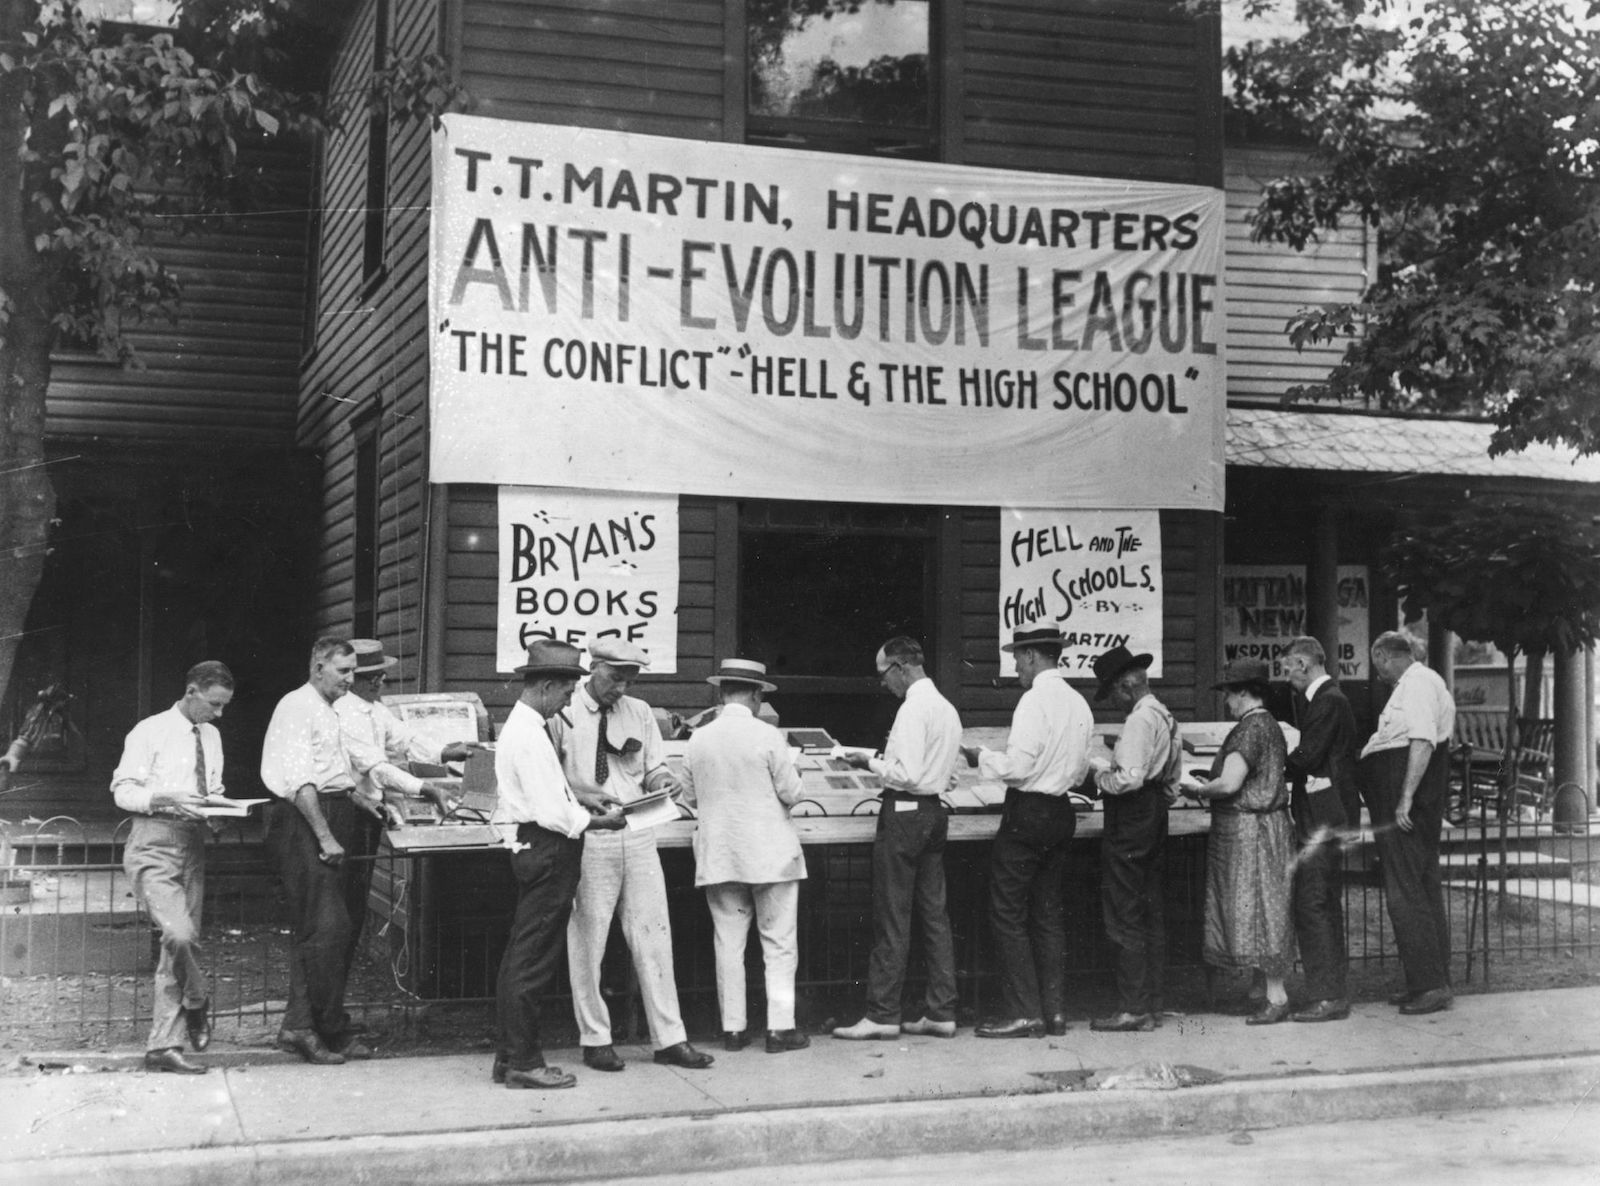 """a large sign for the """"anti-evolution league"""" hangs above a black and white scene of people in front of a book stand"""